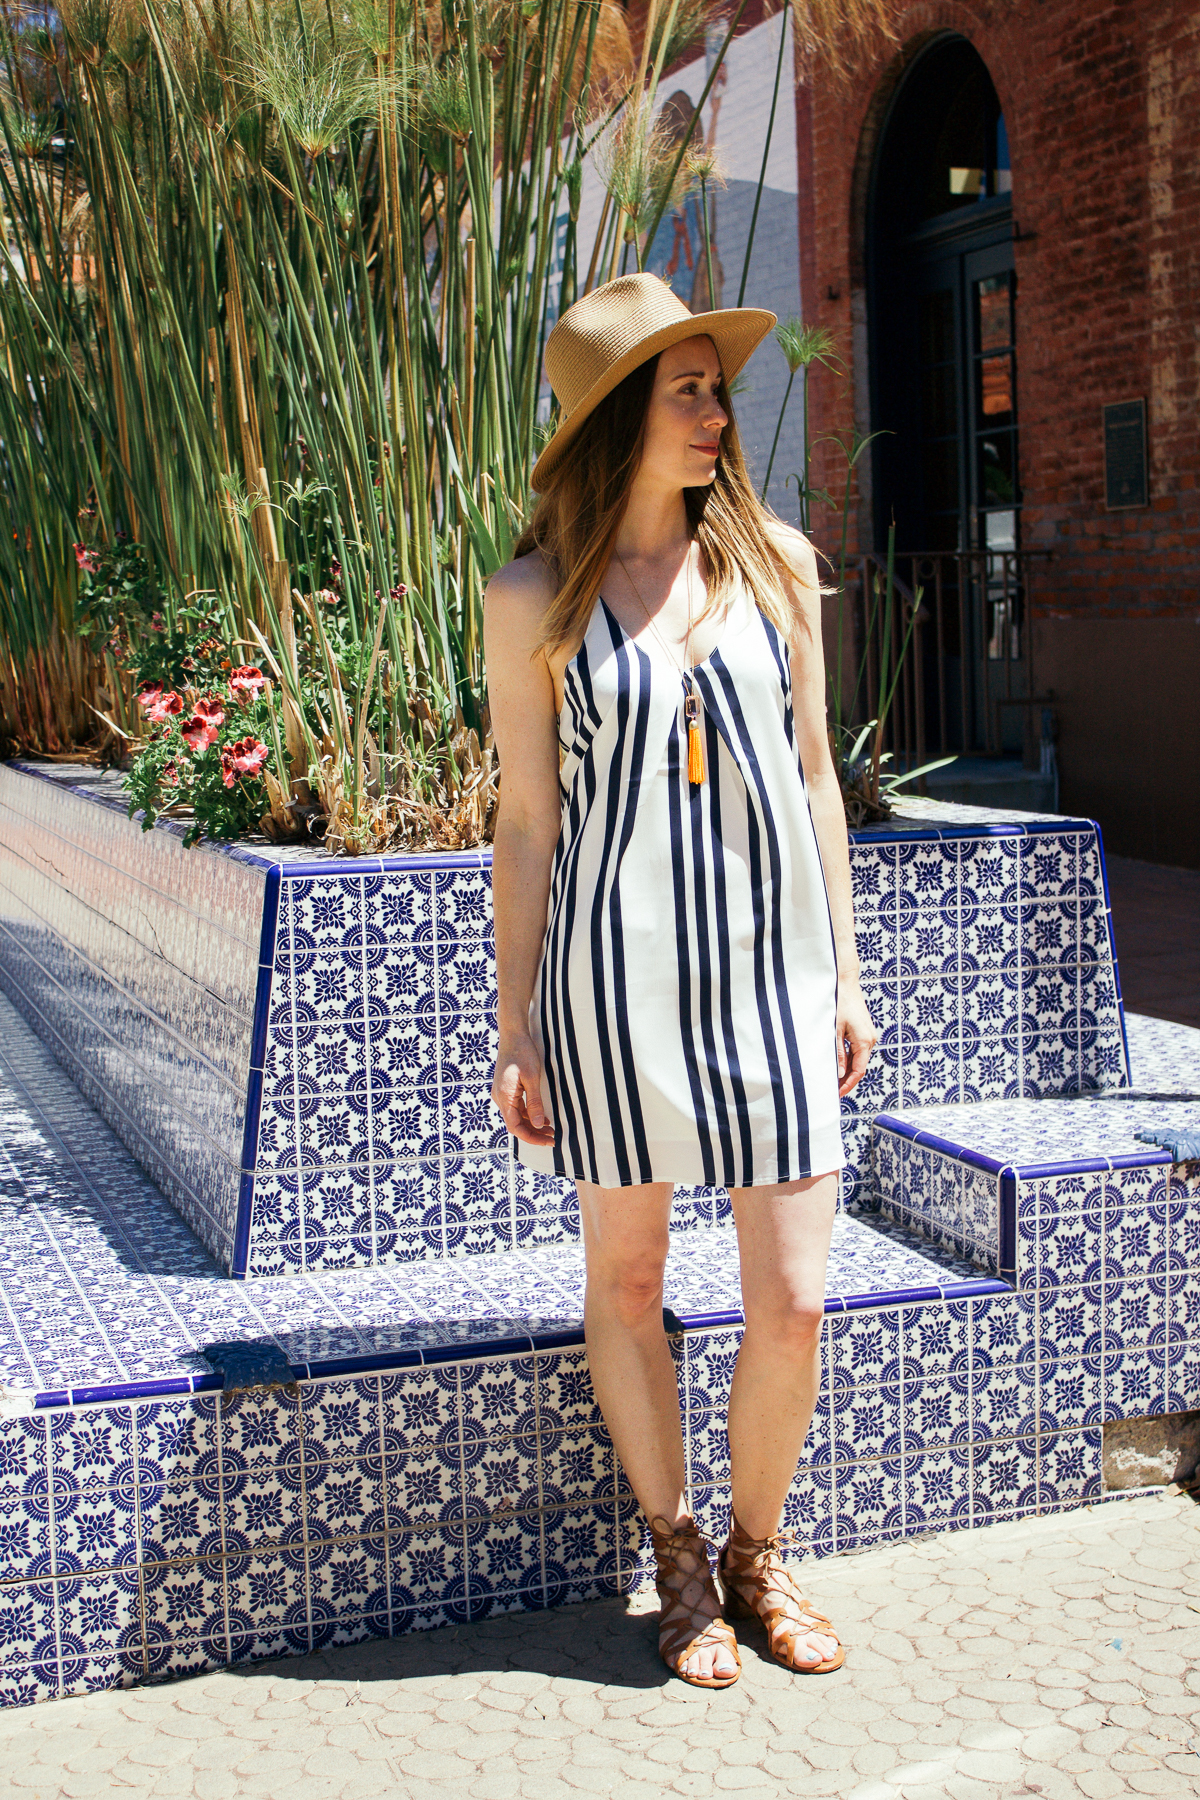 Bishop + Young striped dress, Stacked, navy and white dress, tassel necklace, JCrew necklace, Madewell straw hat, straw hat, summer style, Corso Como sandals, lace up sandals,